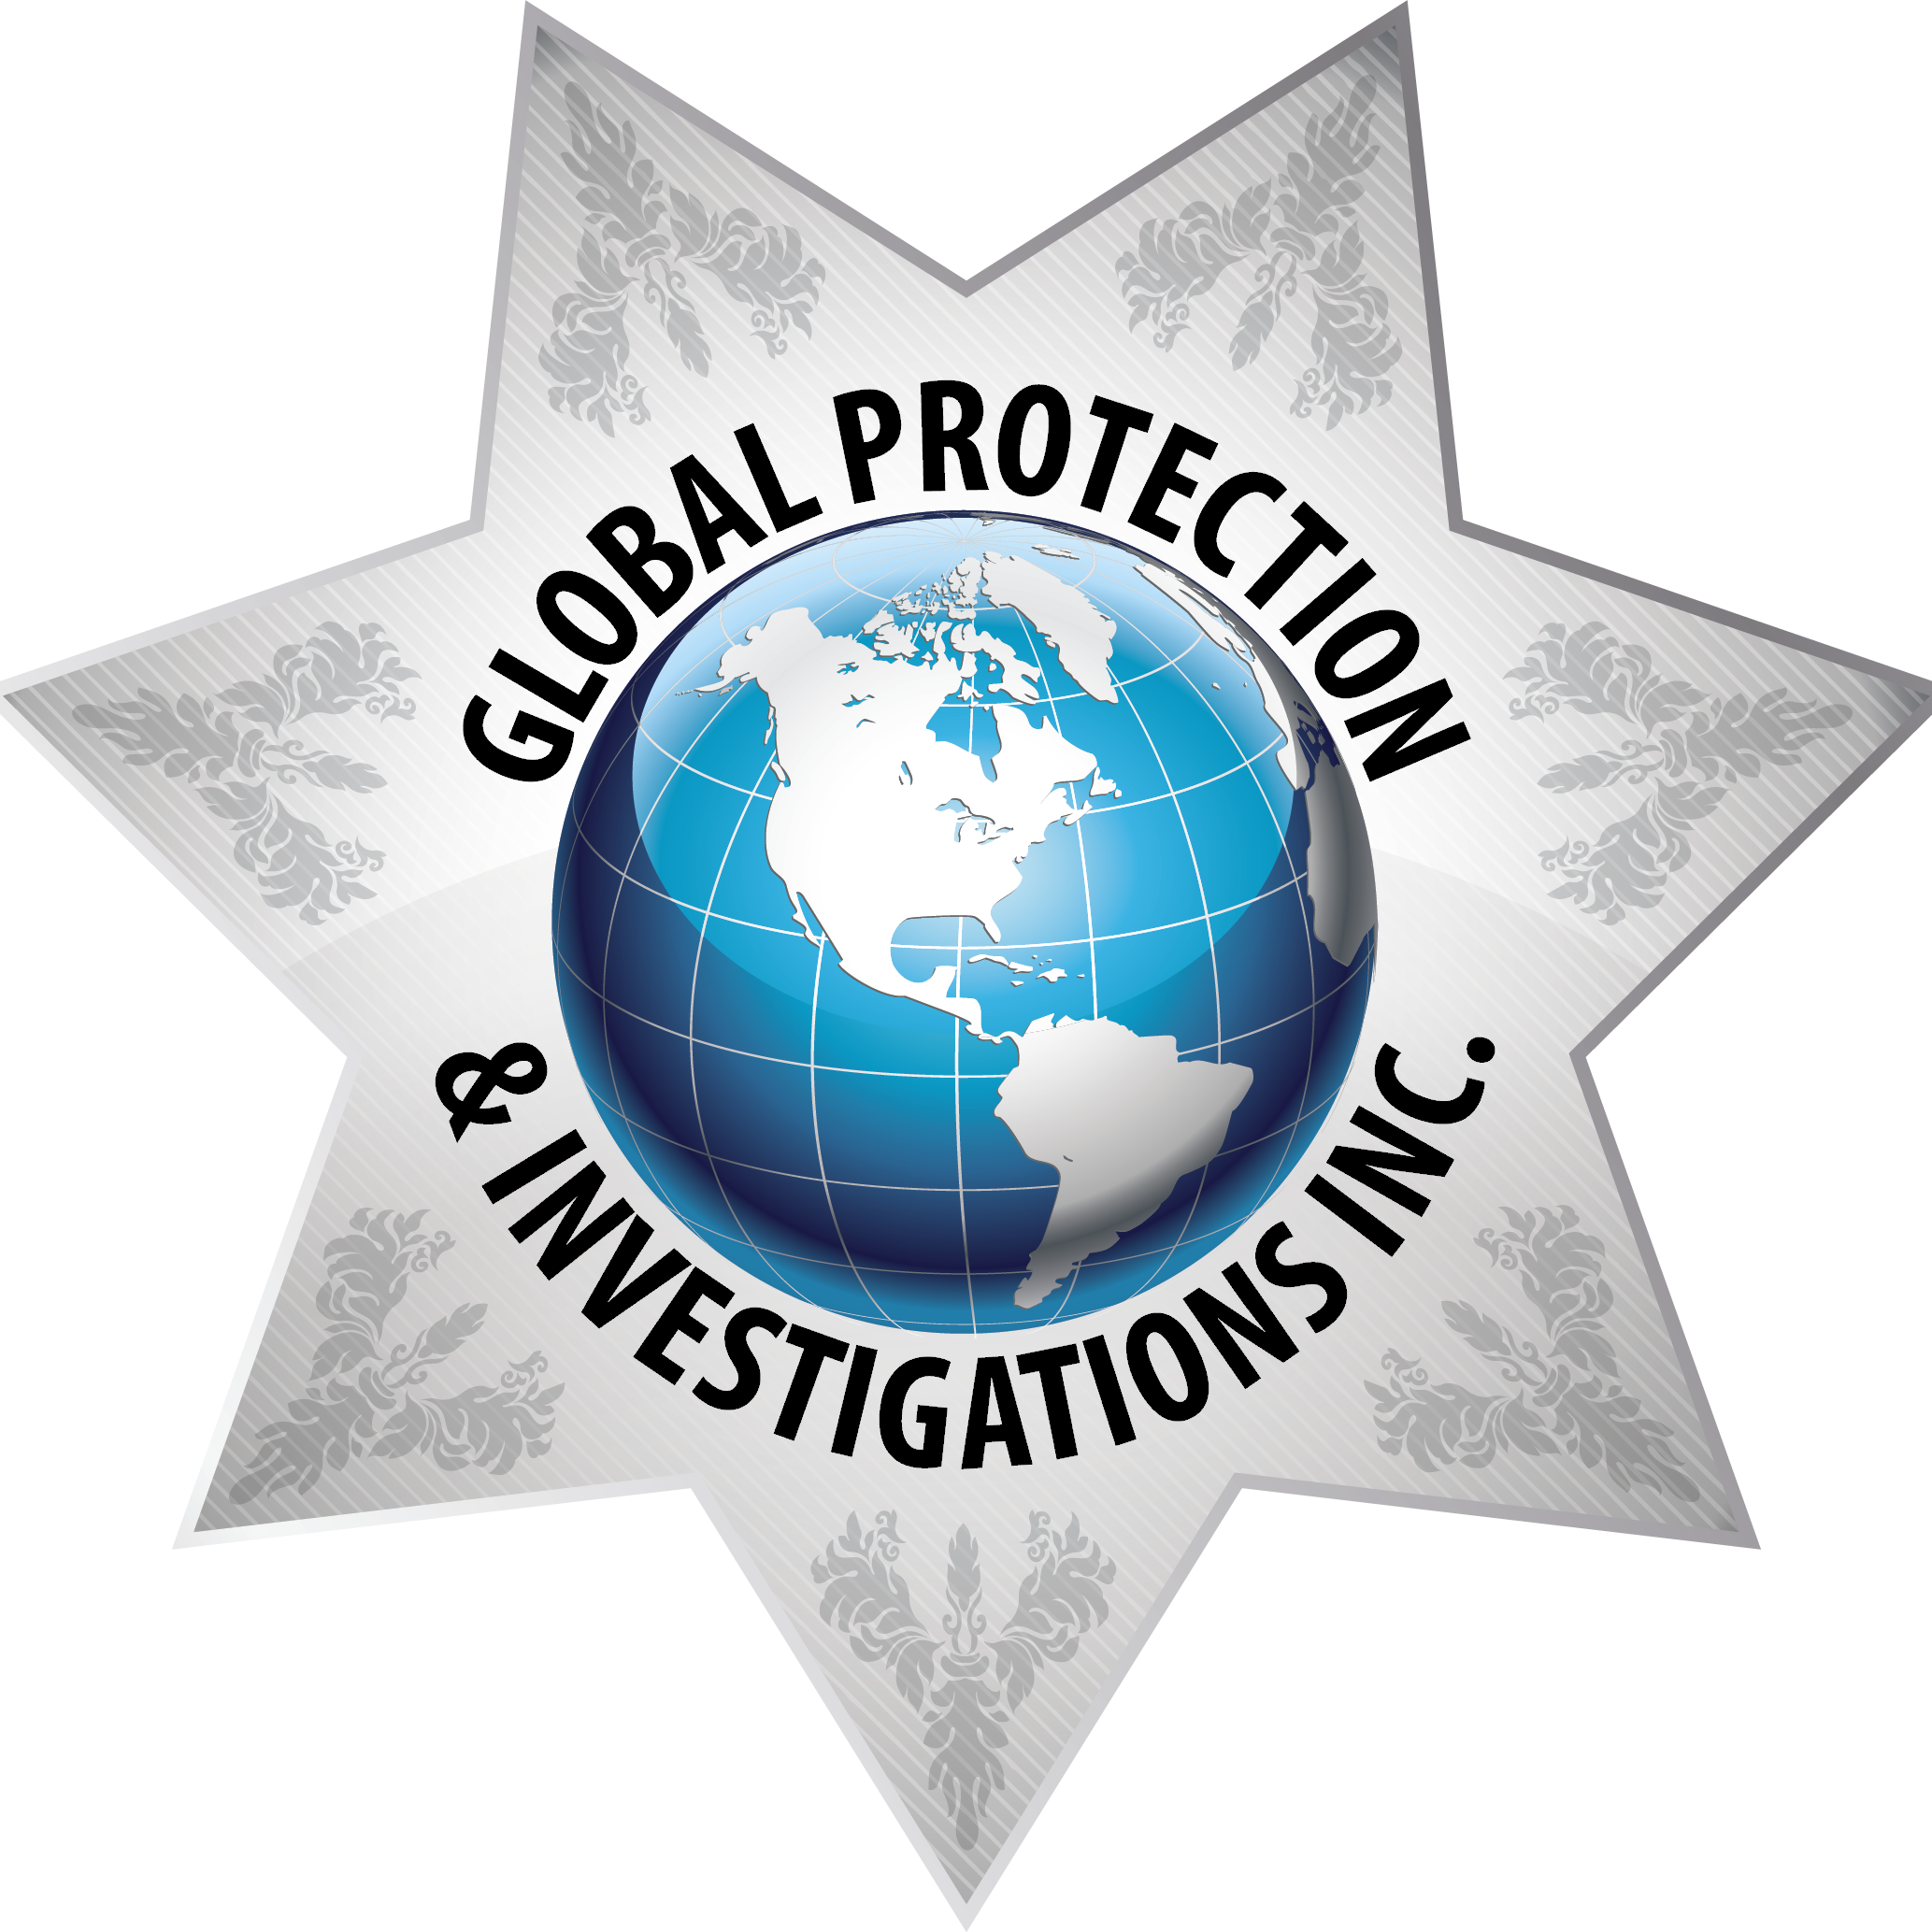 Global Protection & Investigations